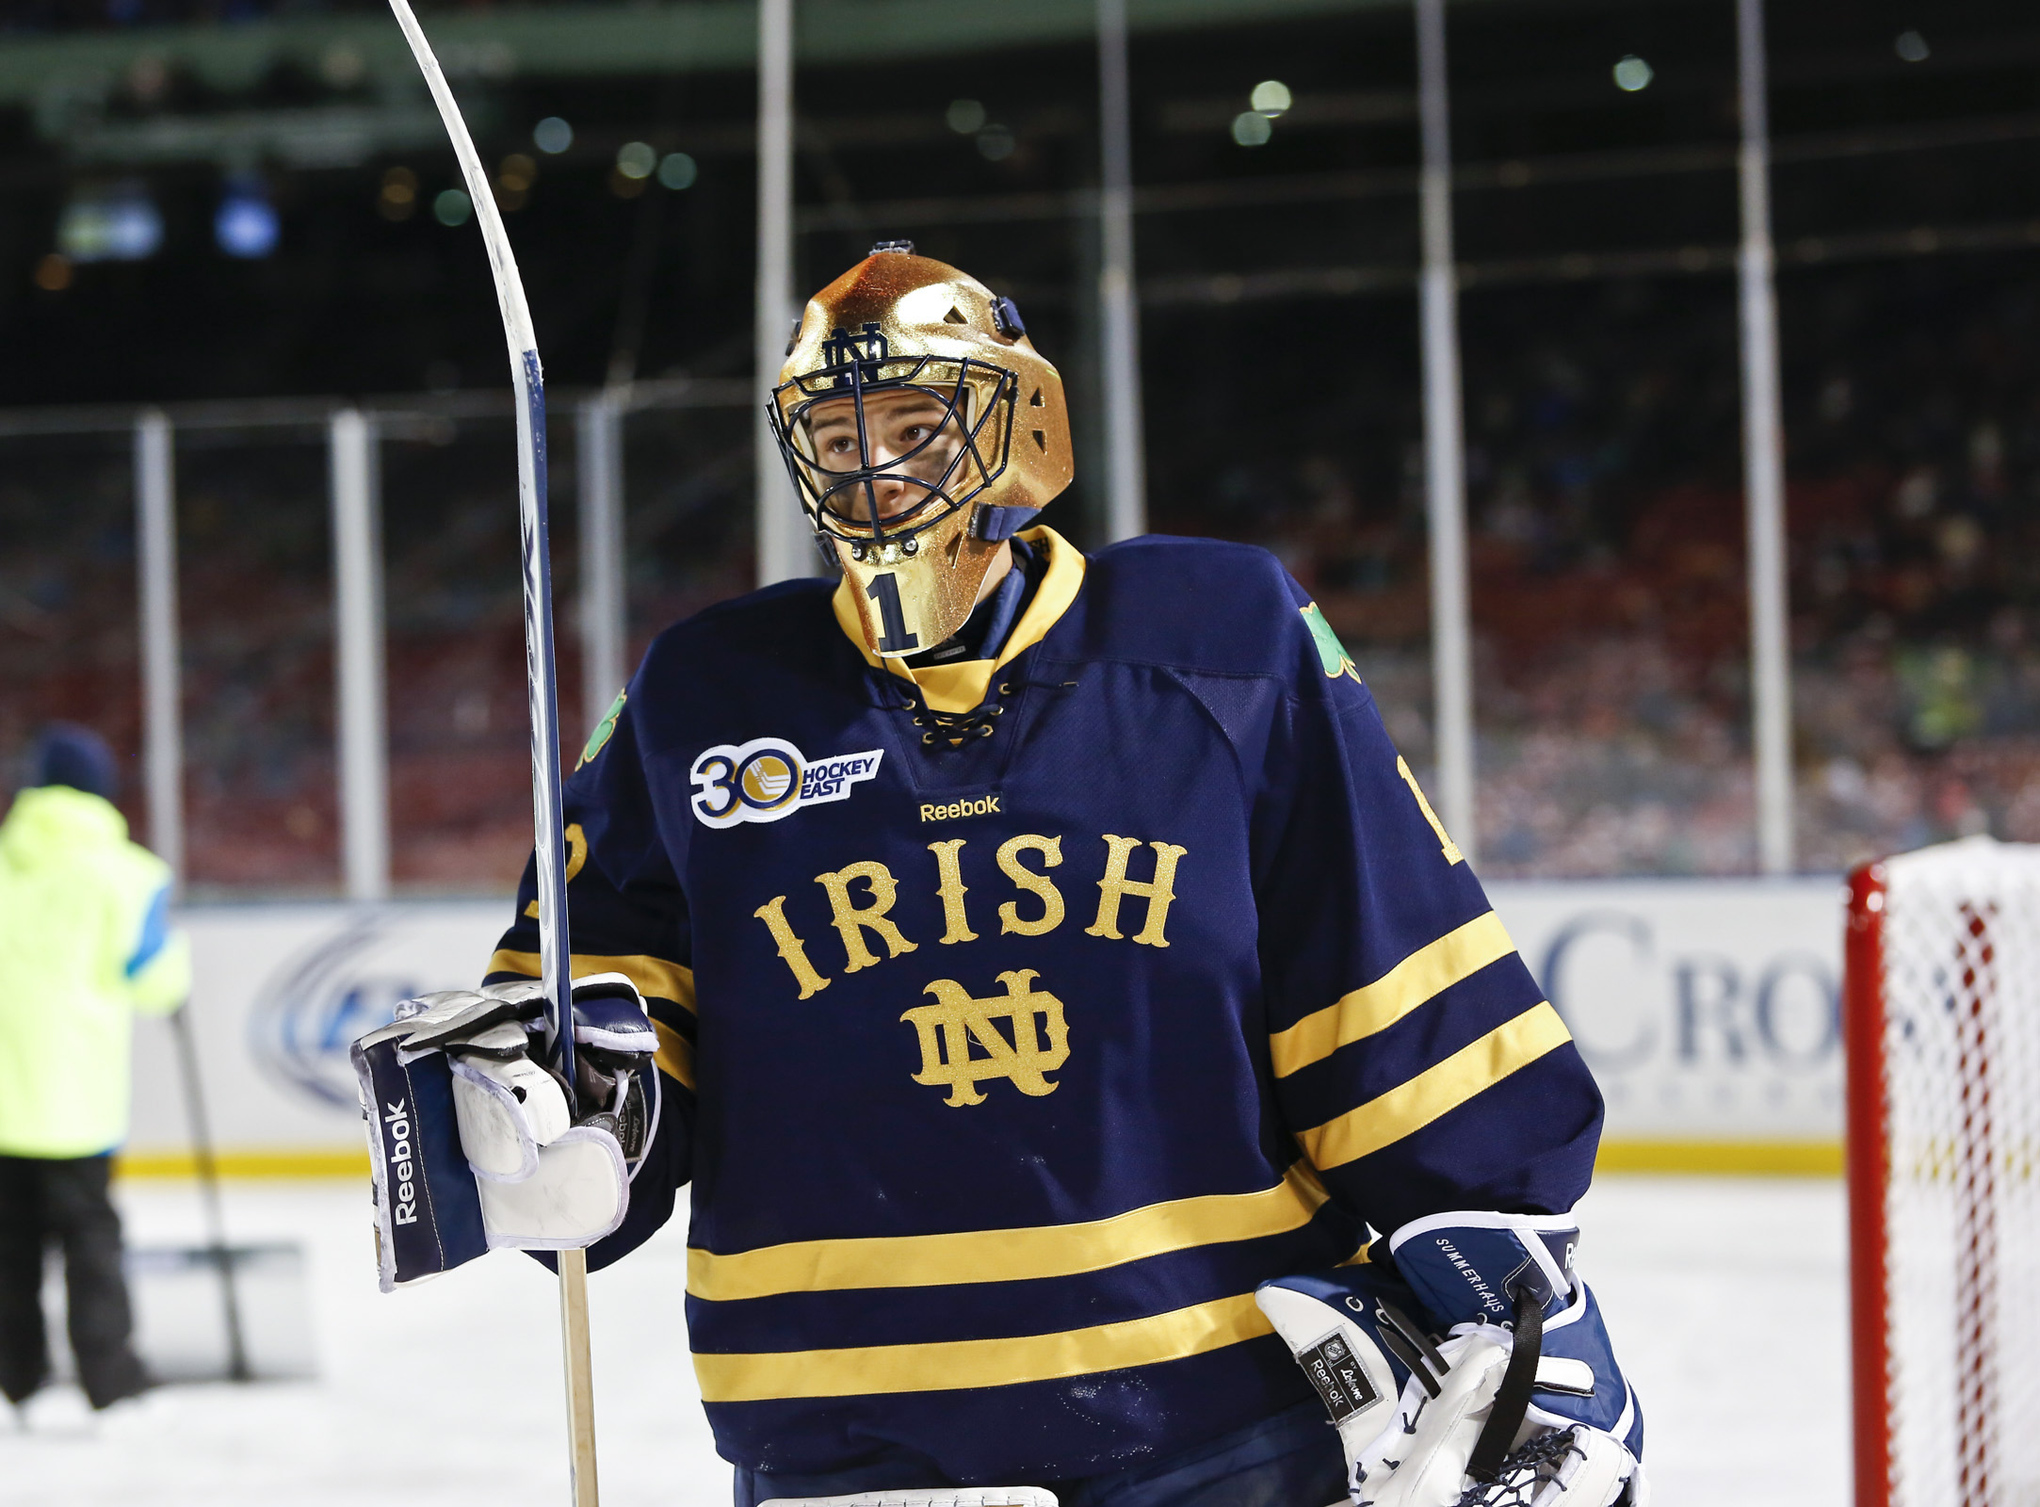 Notre Dame goaltender Steven Summerhays and his team will face UMass Lowell in the first Hockey East semifinal.